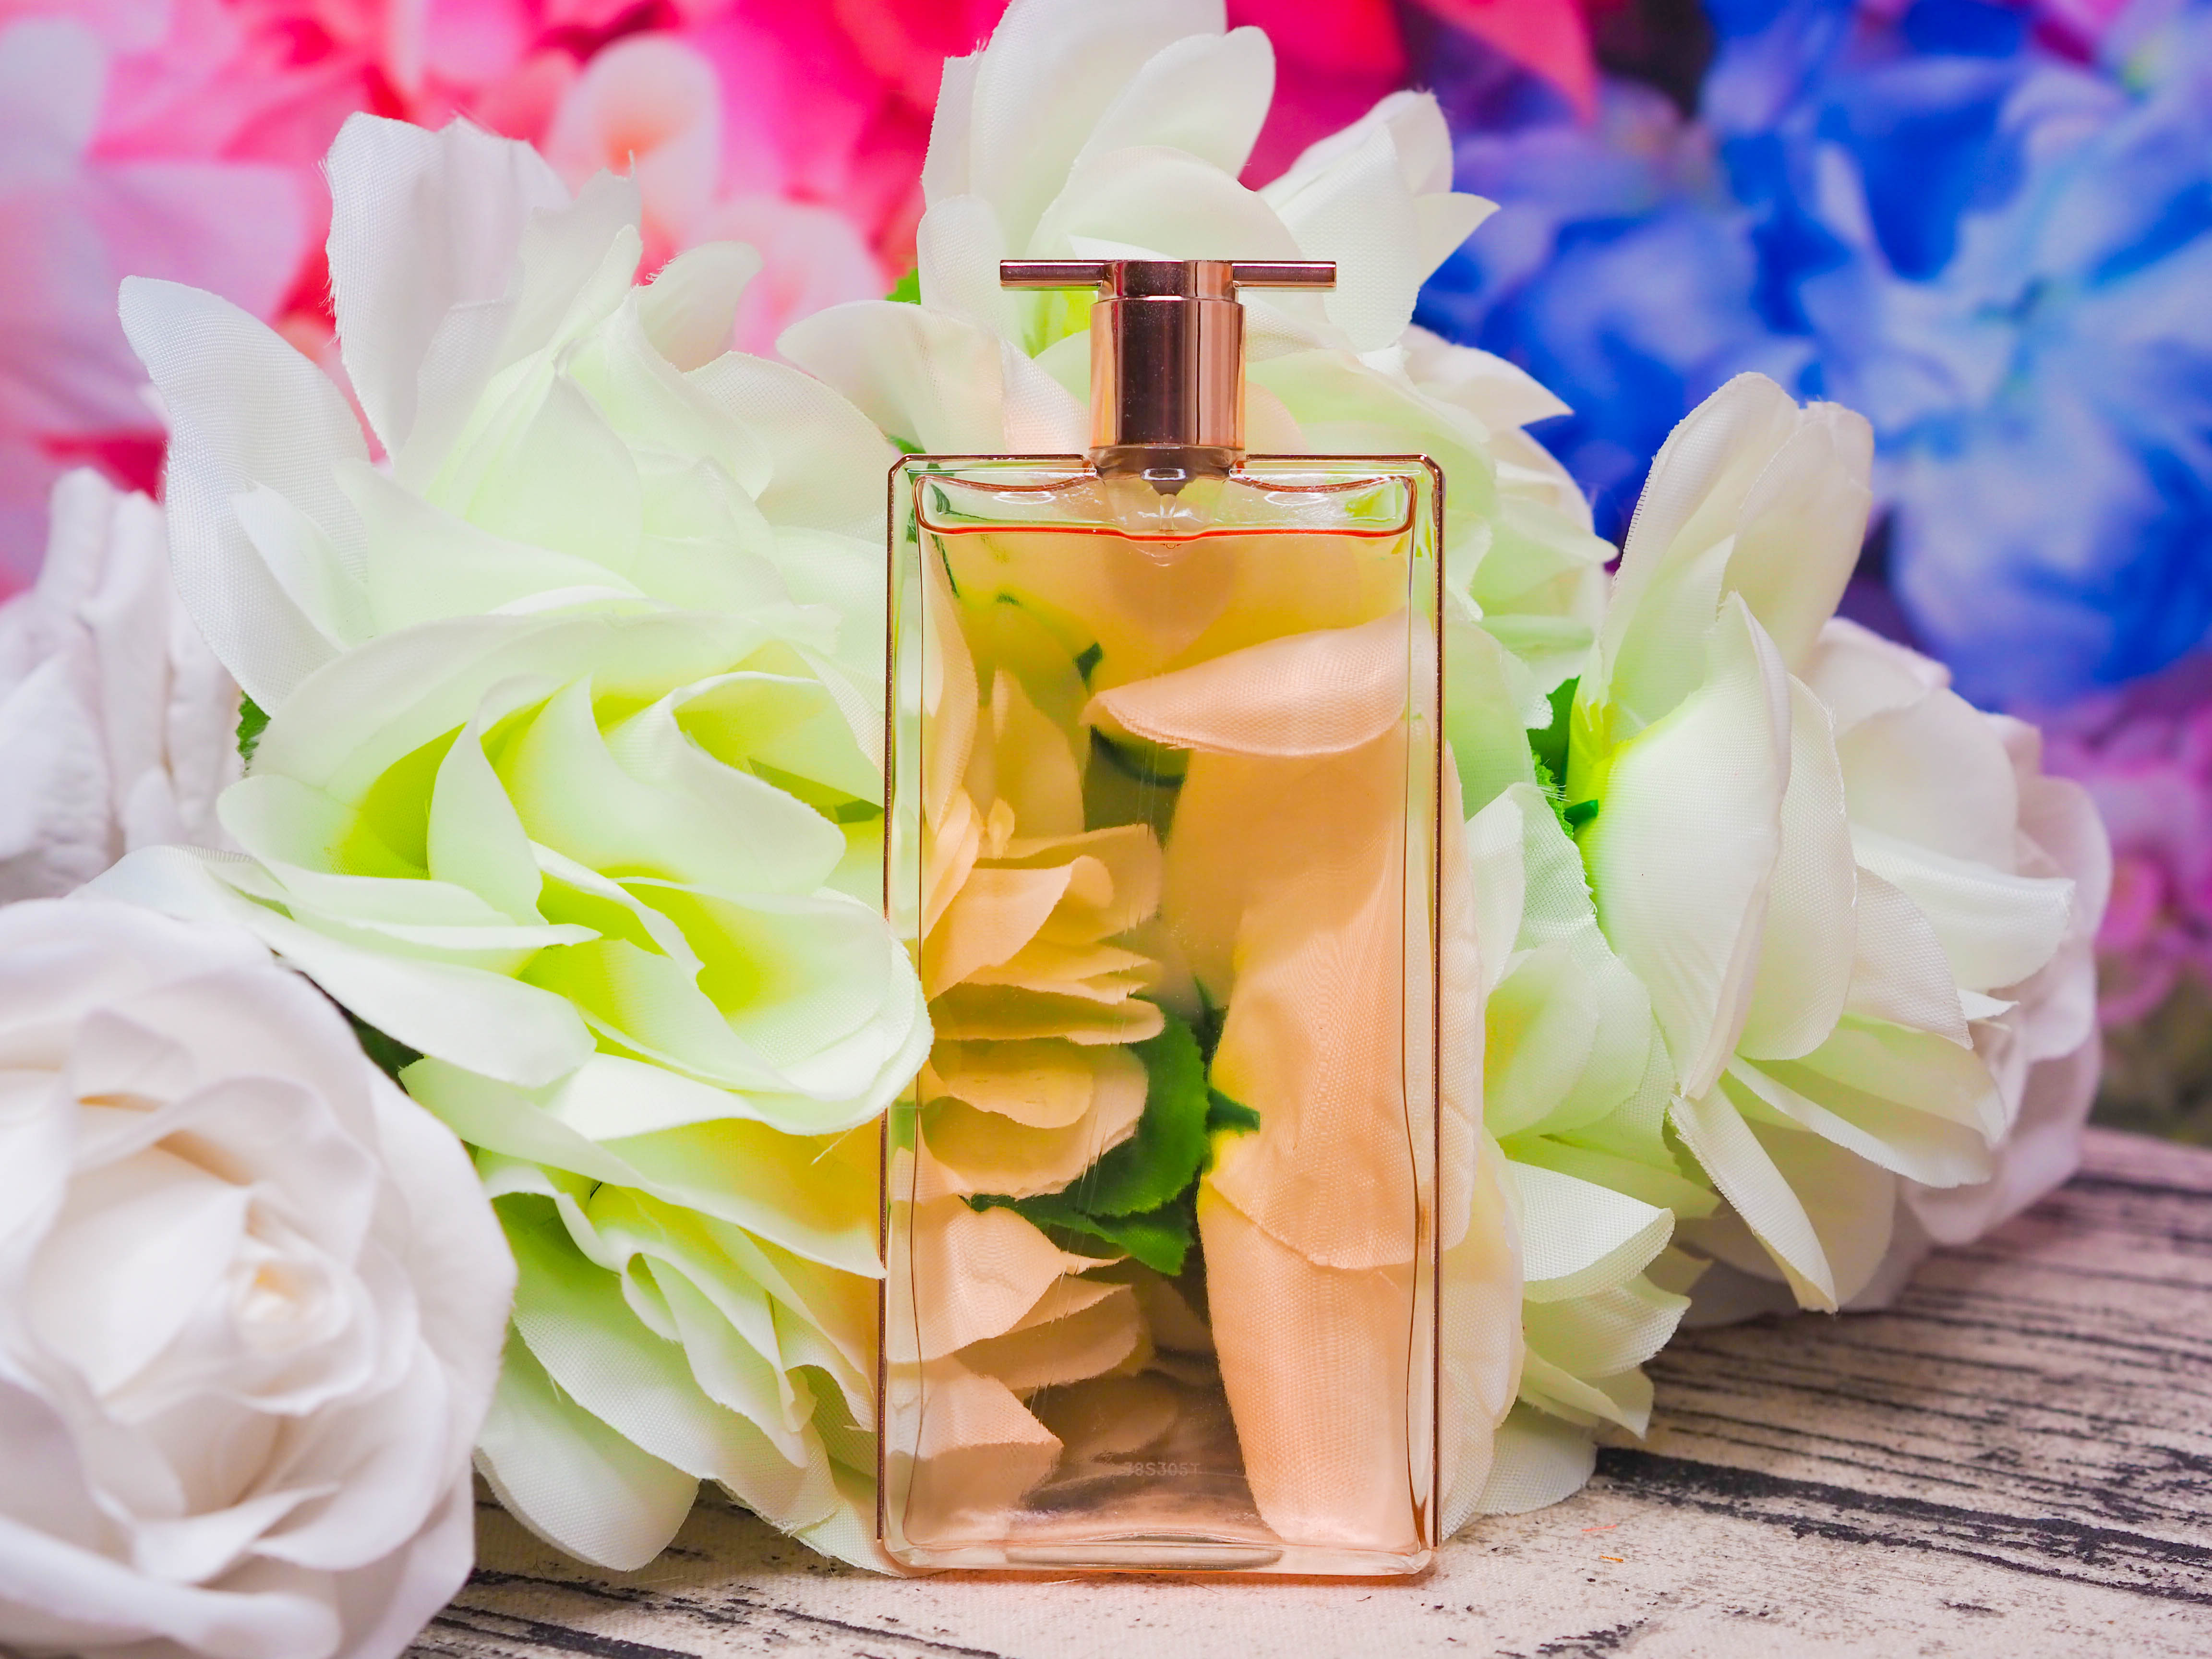 Pin on Fragrances. Health and Beauty